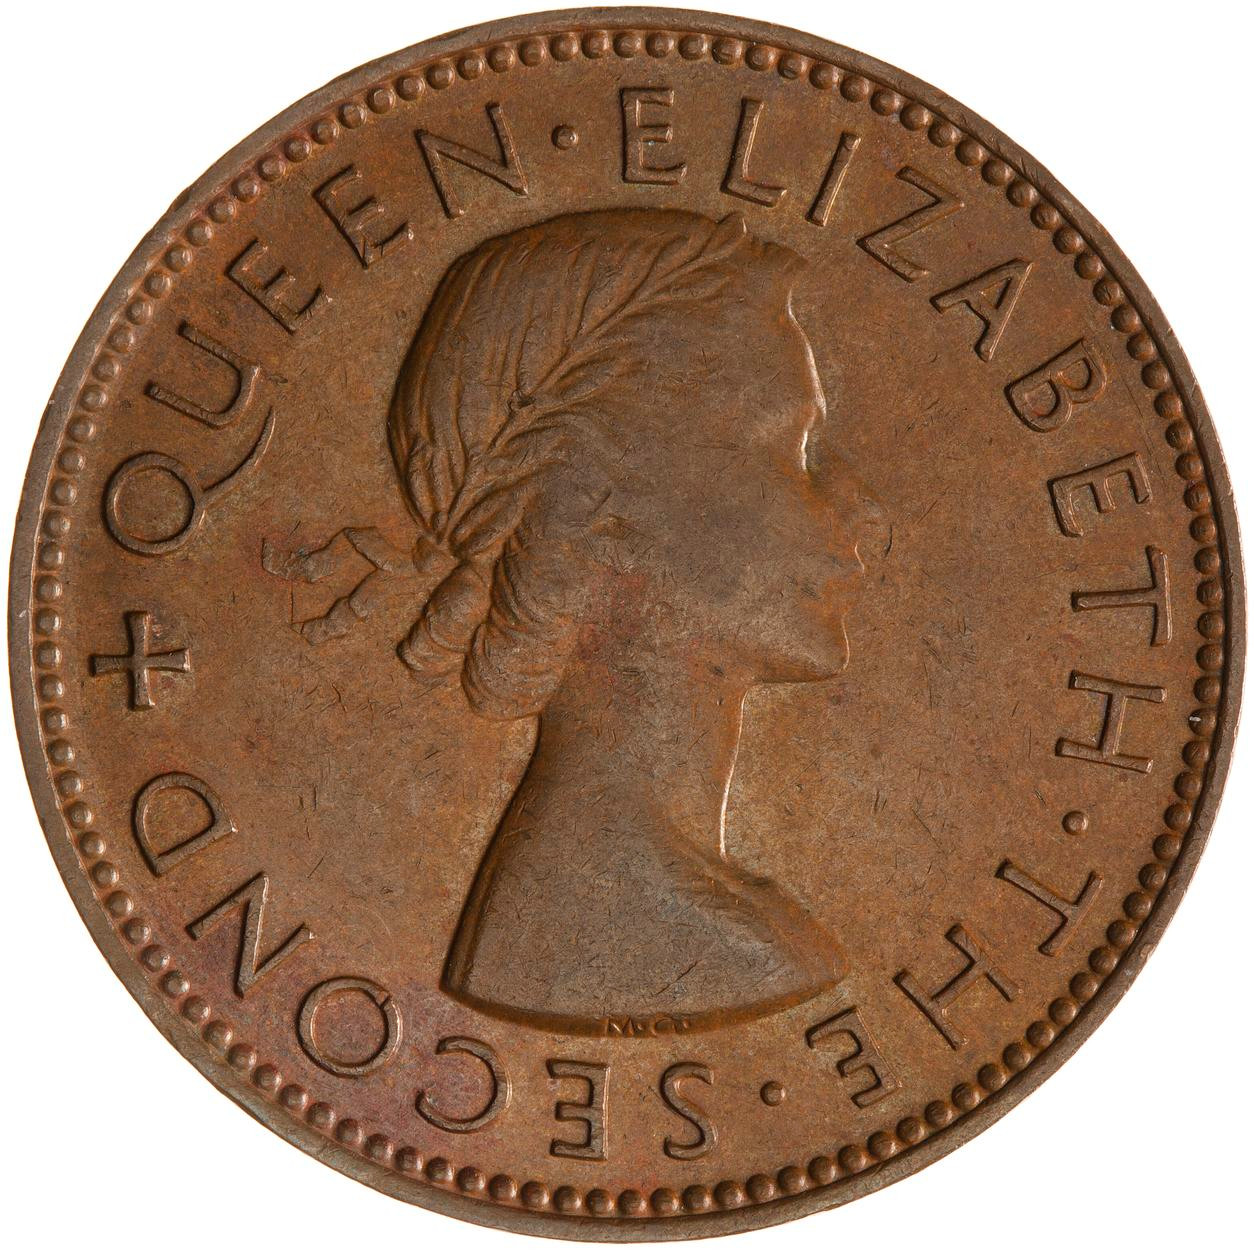 Halfpenny 1954: Photo Coin - 1/2 Penny, New Zealand, 1954